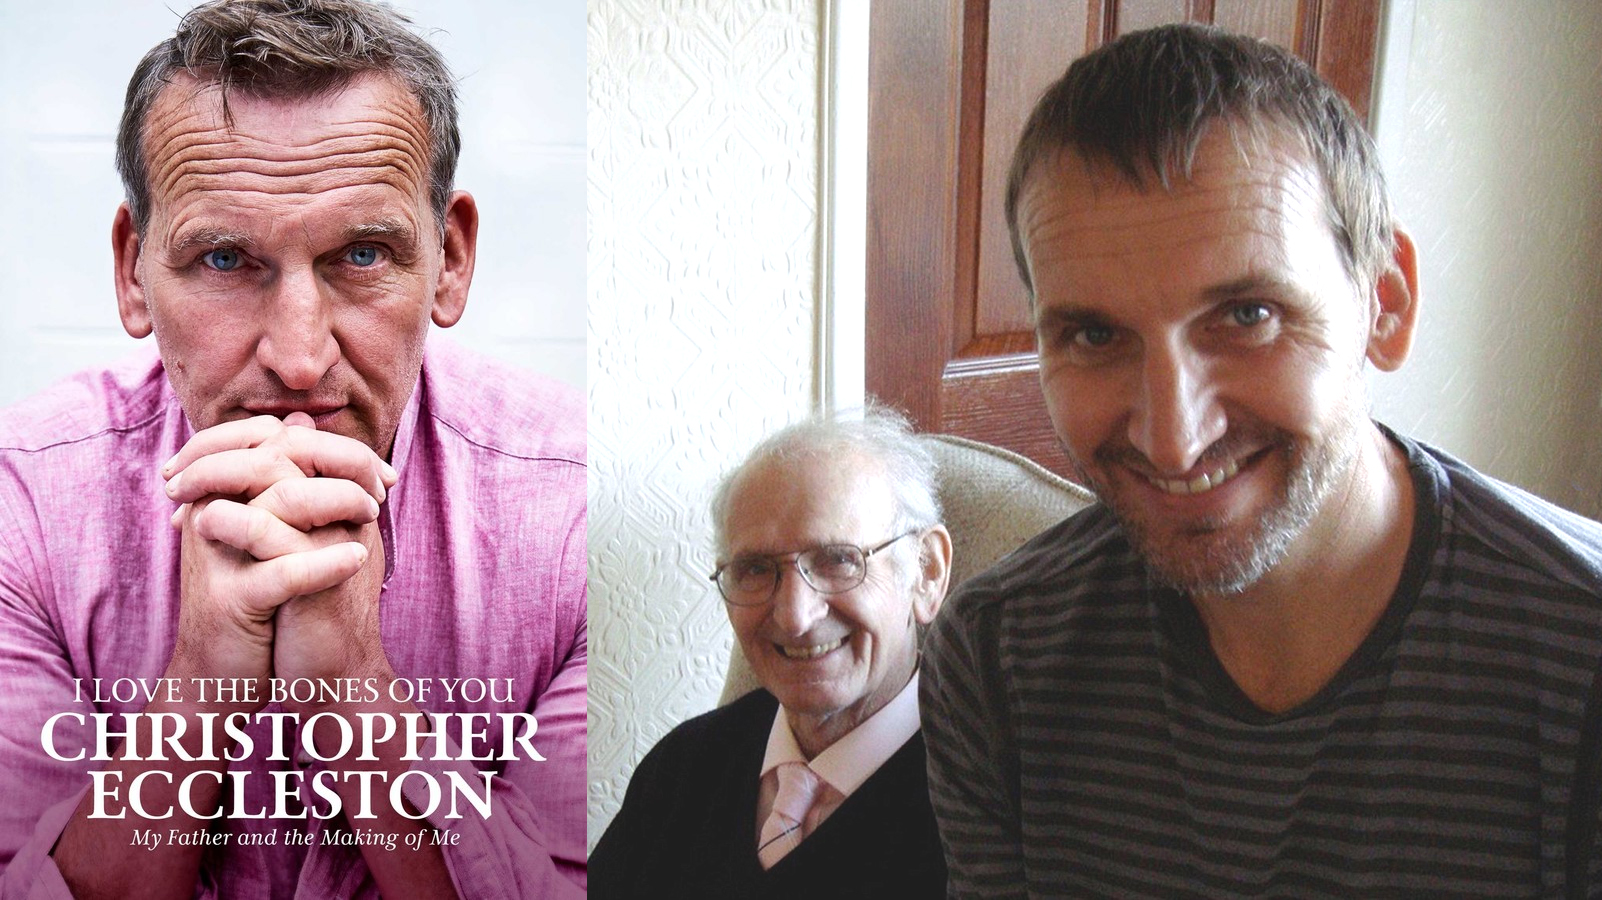 Christopher Eccleston memoir to be released next month